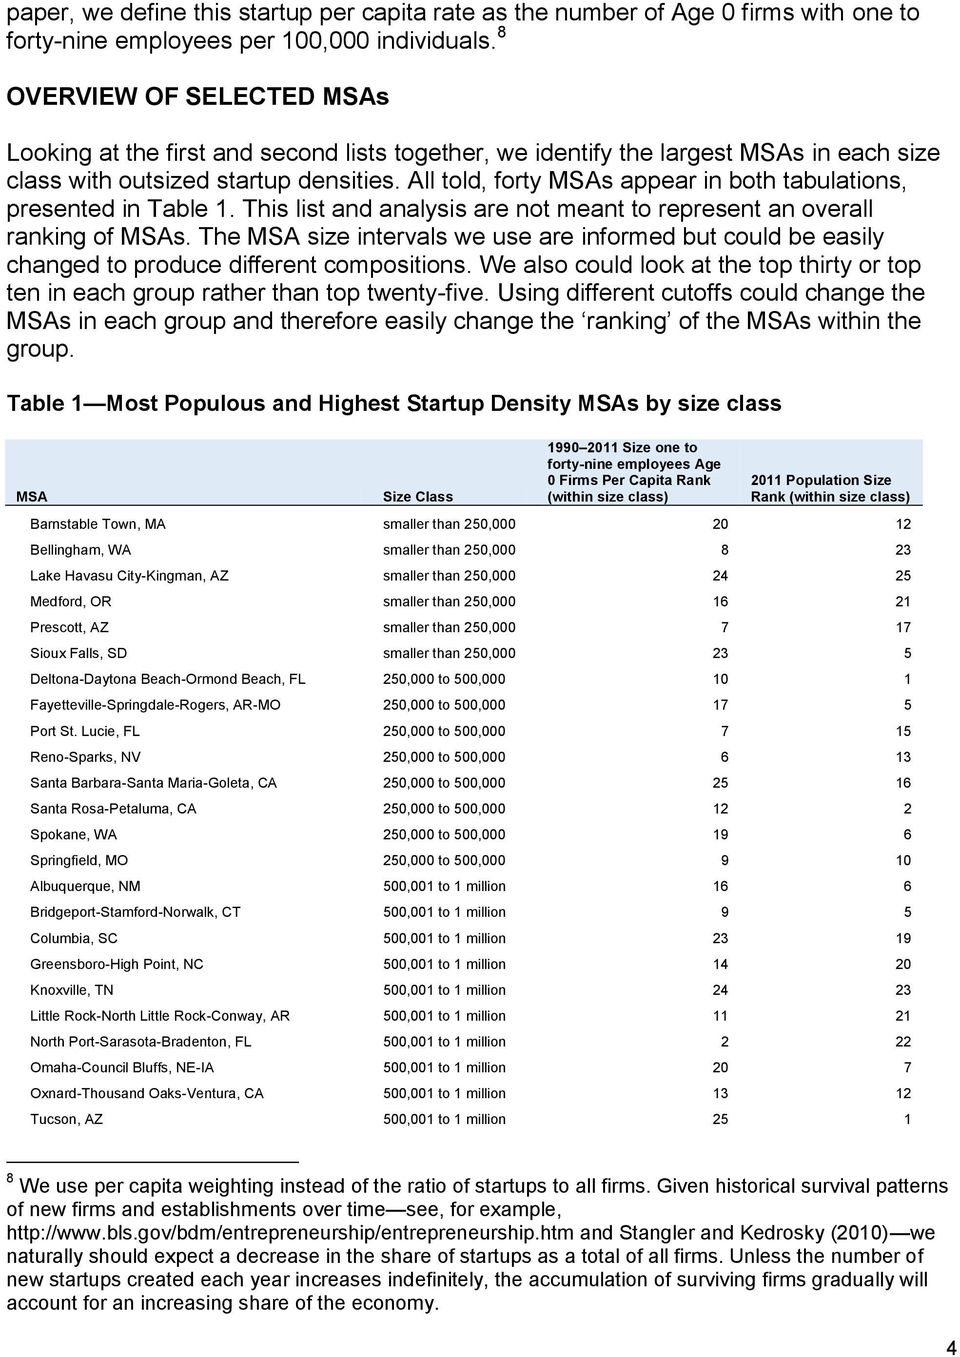 All told, forty MSAs appear in both tabulations, presented in Table 1. This list and analysis are not meant to represent an overall ranking of MSAs.